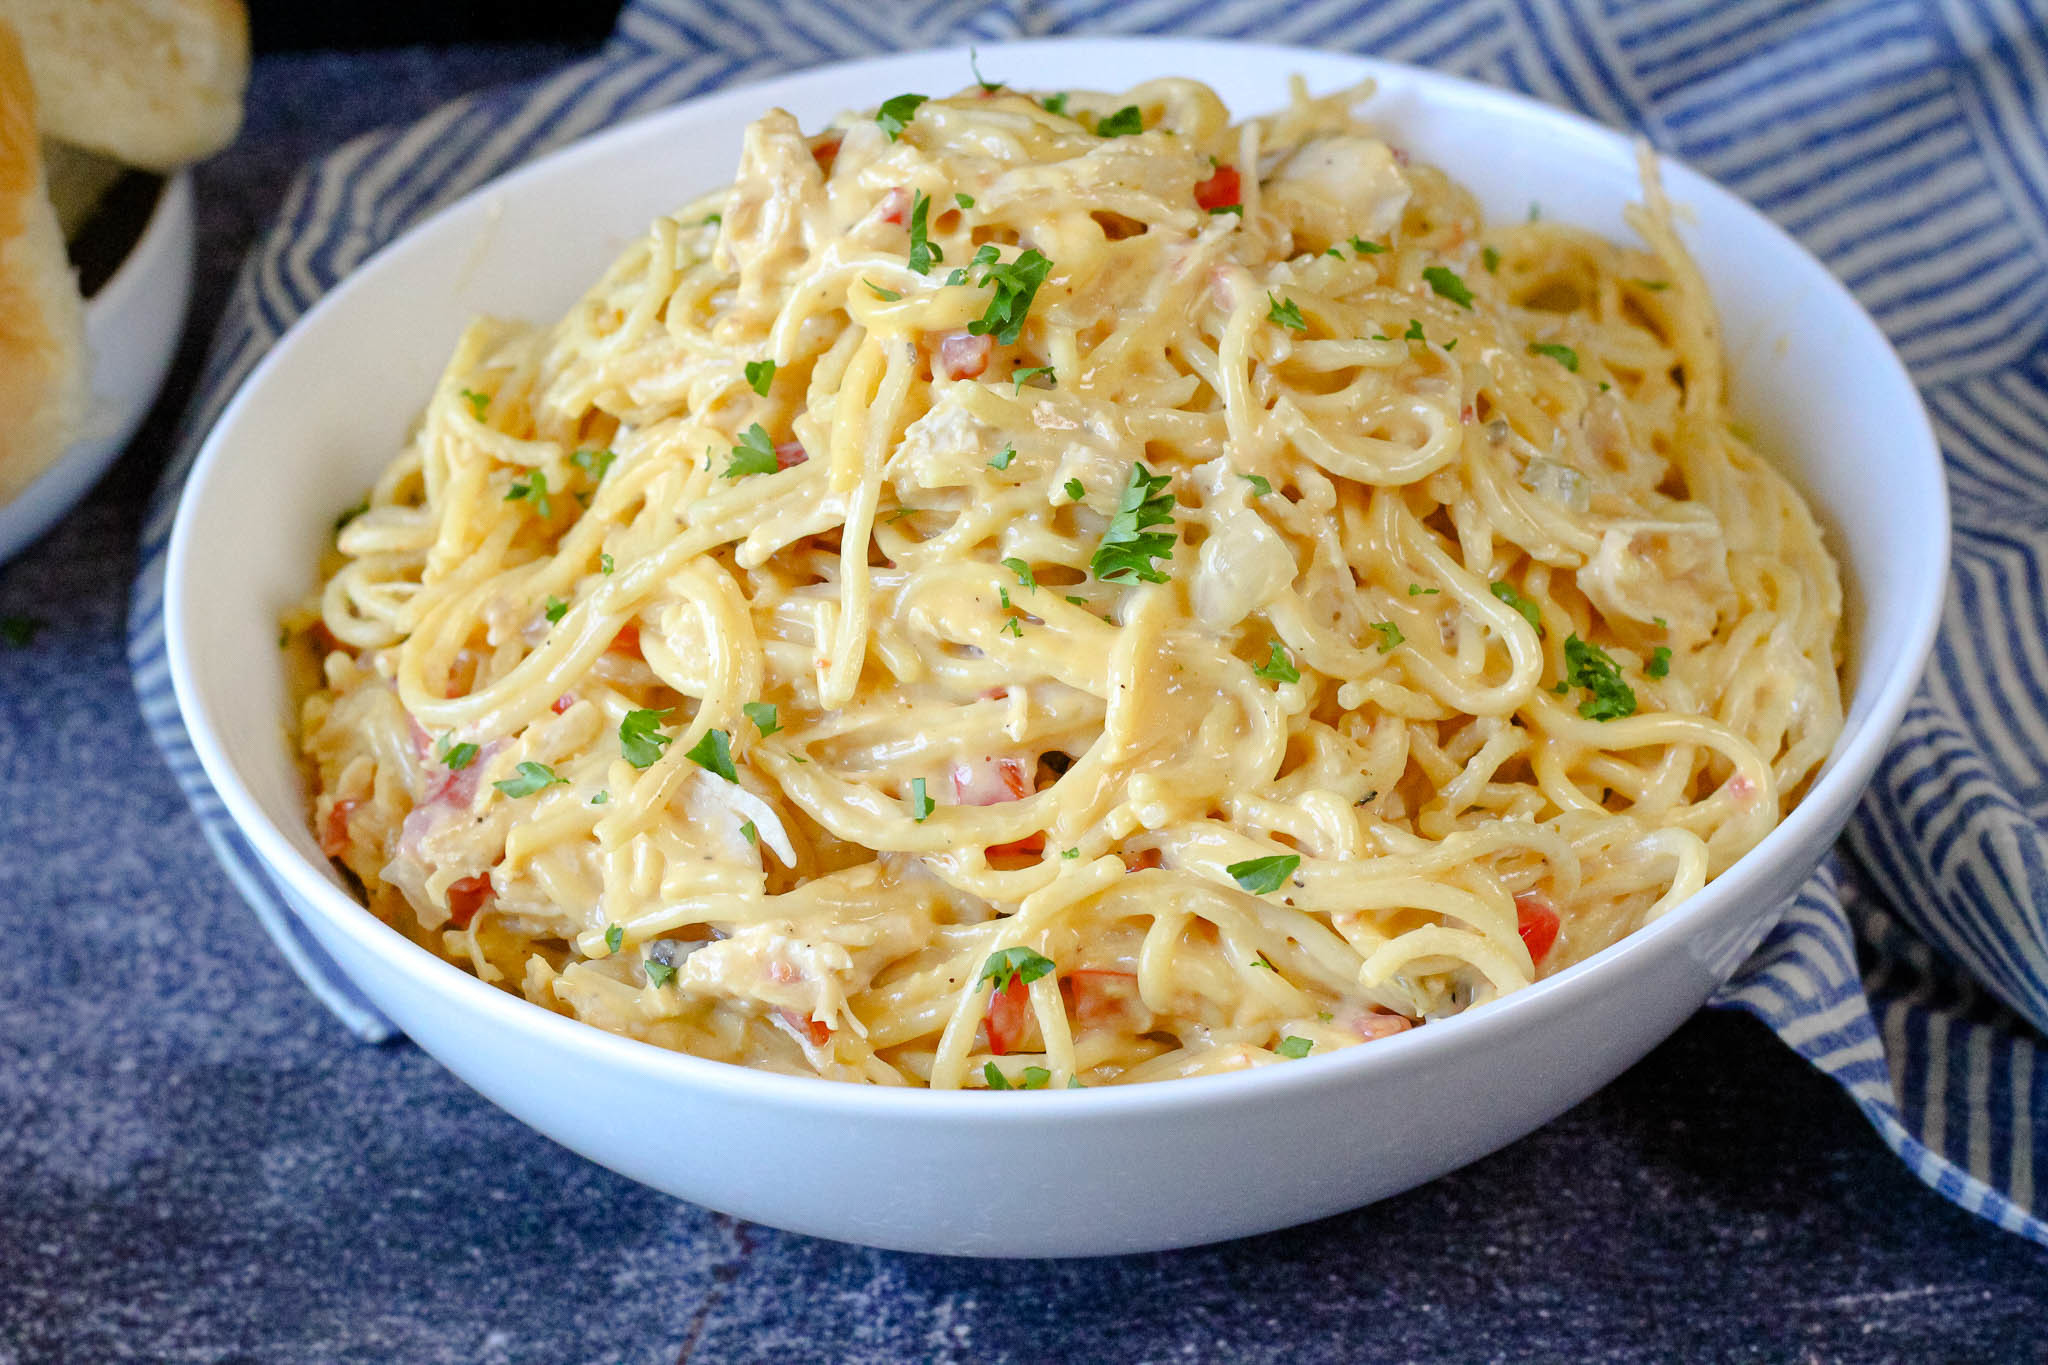 Chicken Spaghetti Recipe 13 | Just A Pinch Recipes